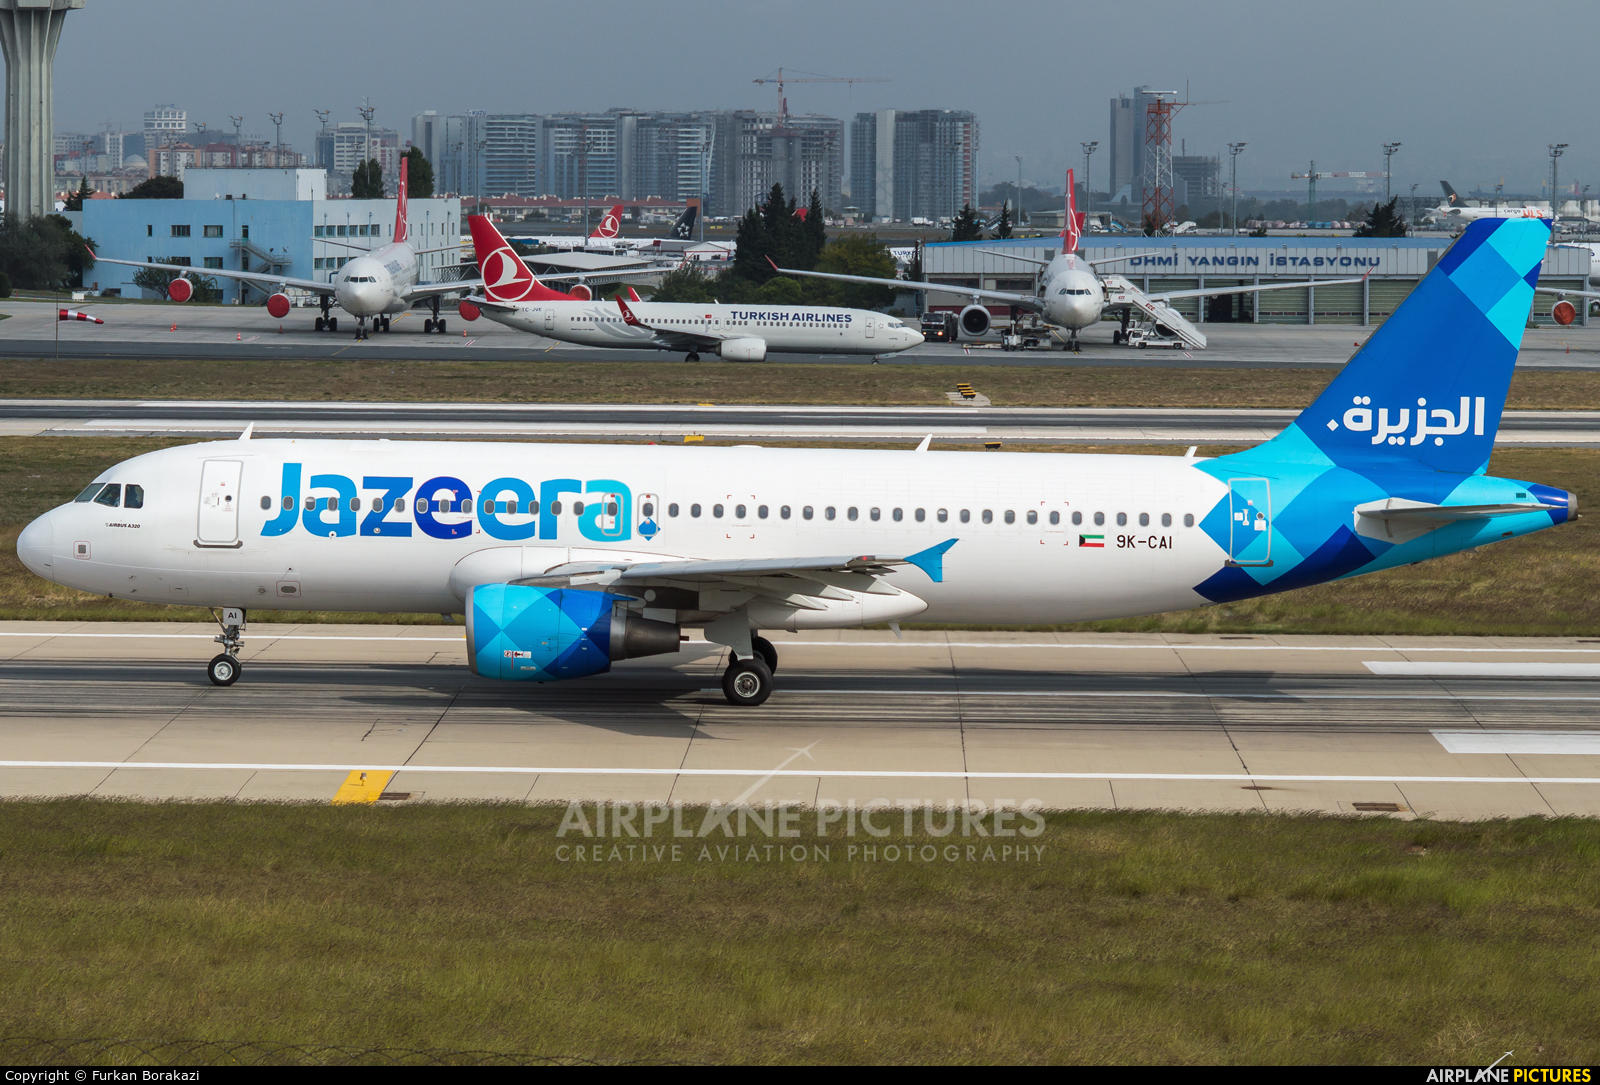 Jazeera Airways 9K-CAI aircraft at Istanbul - Ataturk